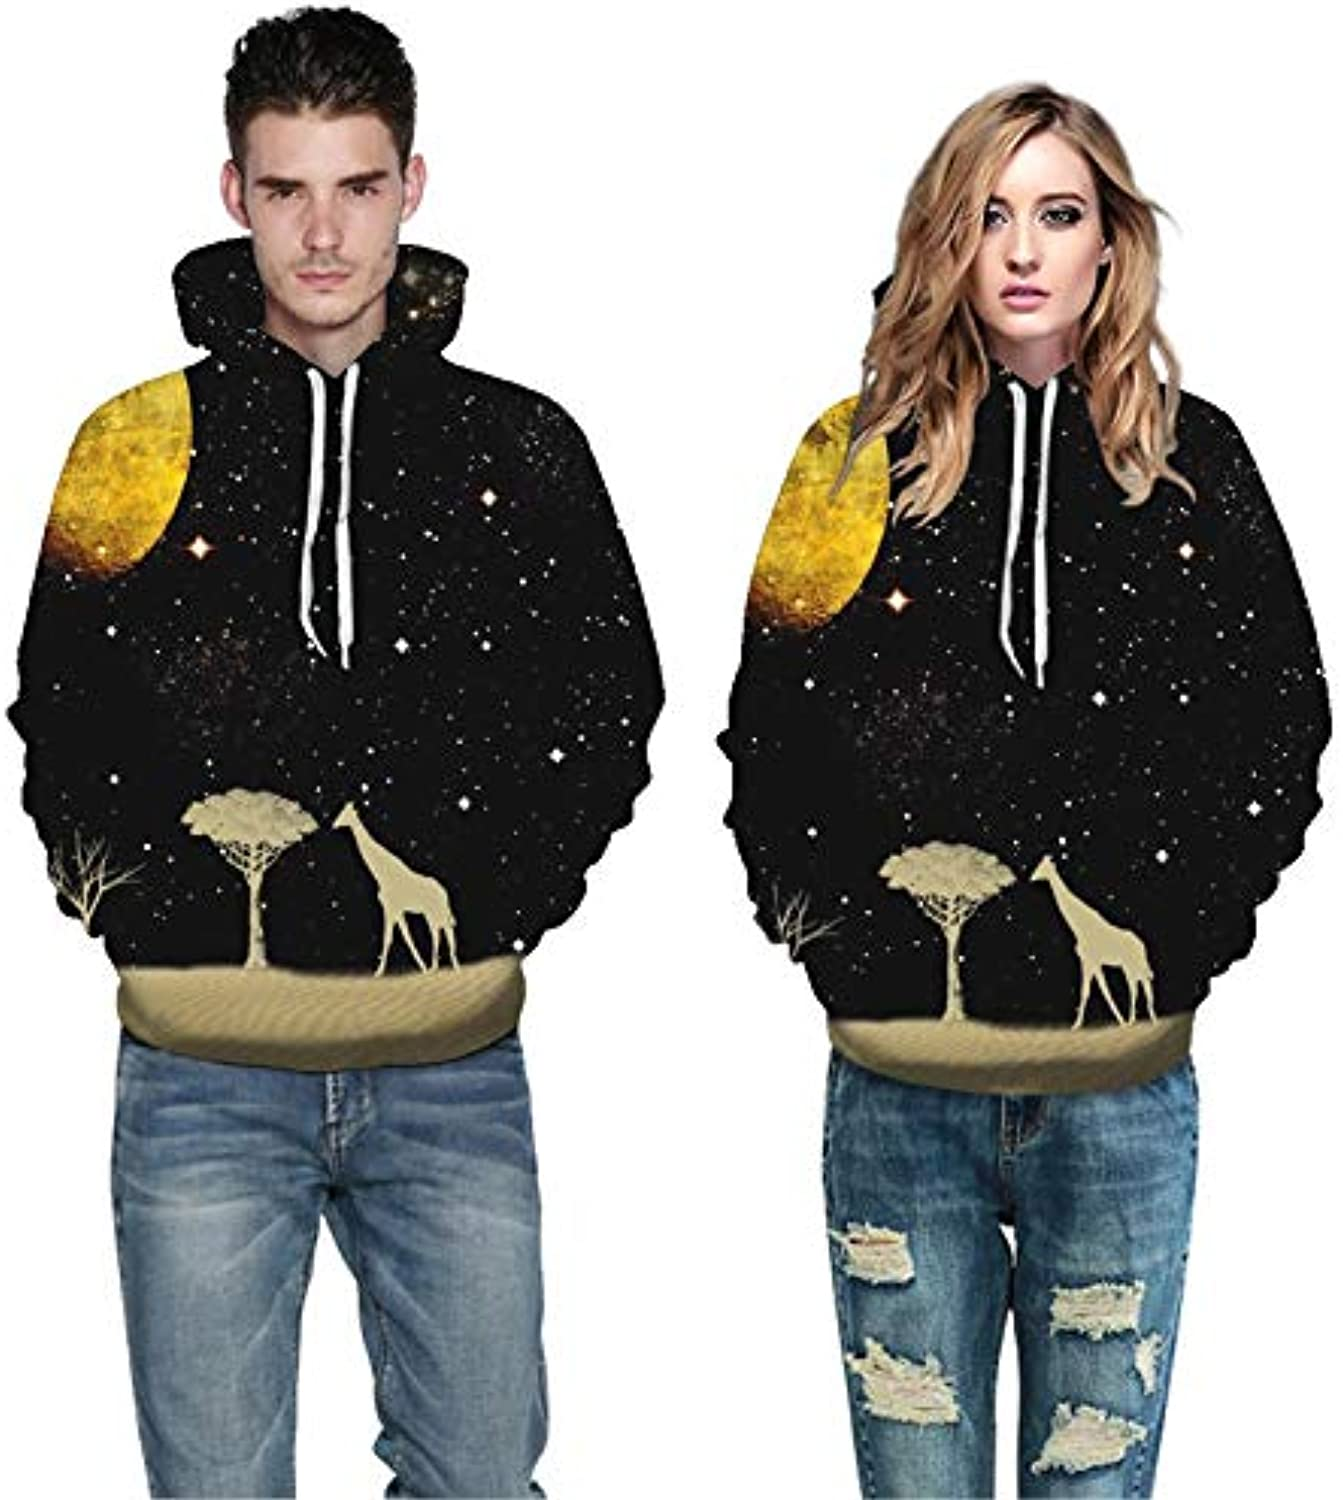 GSYDWY Sweater Sweater Fashion Star Creative 3D Sweater Printing Large Size